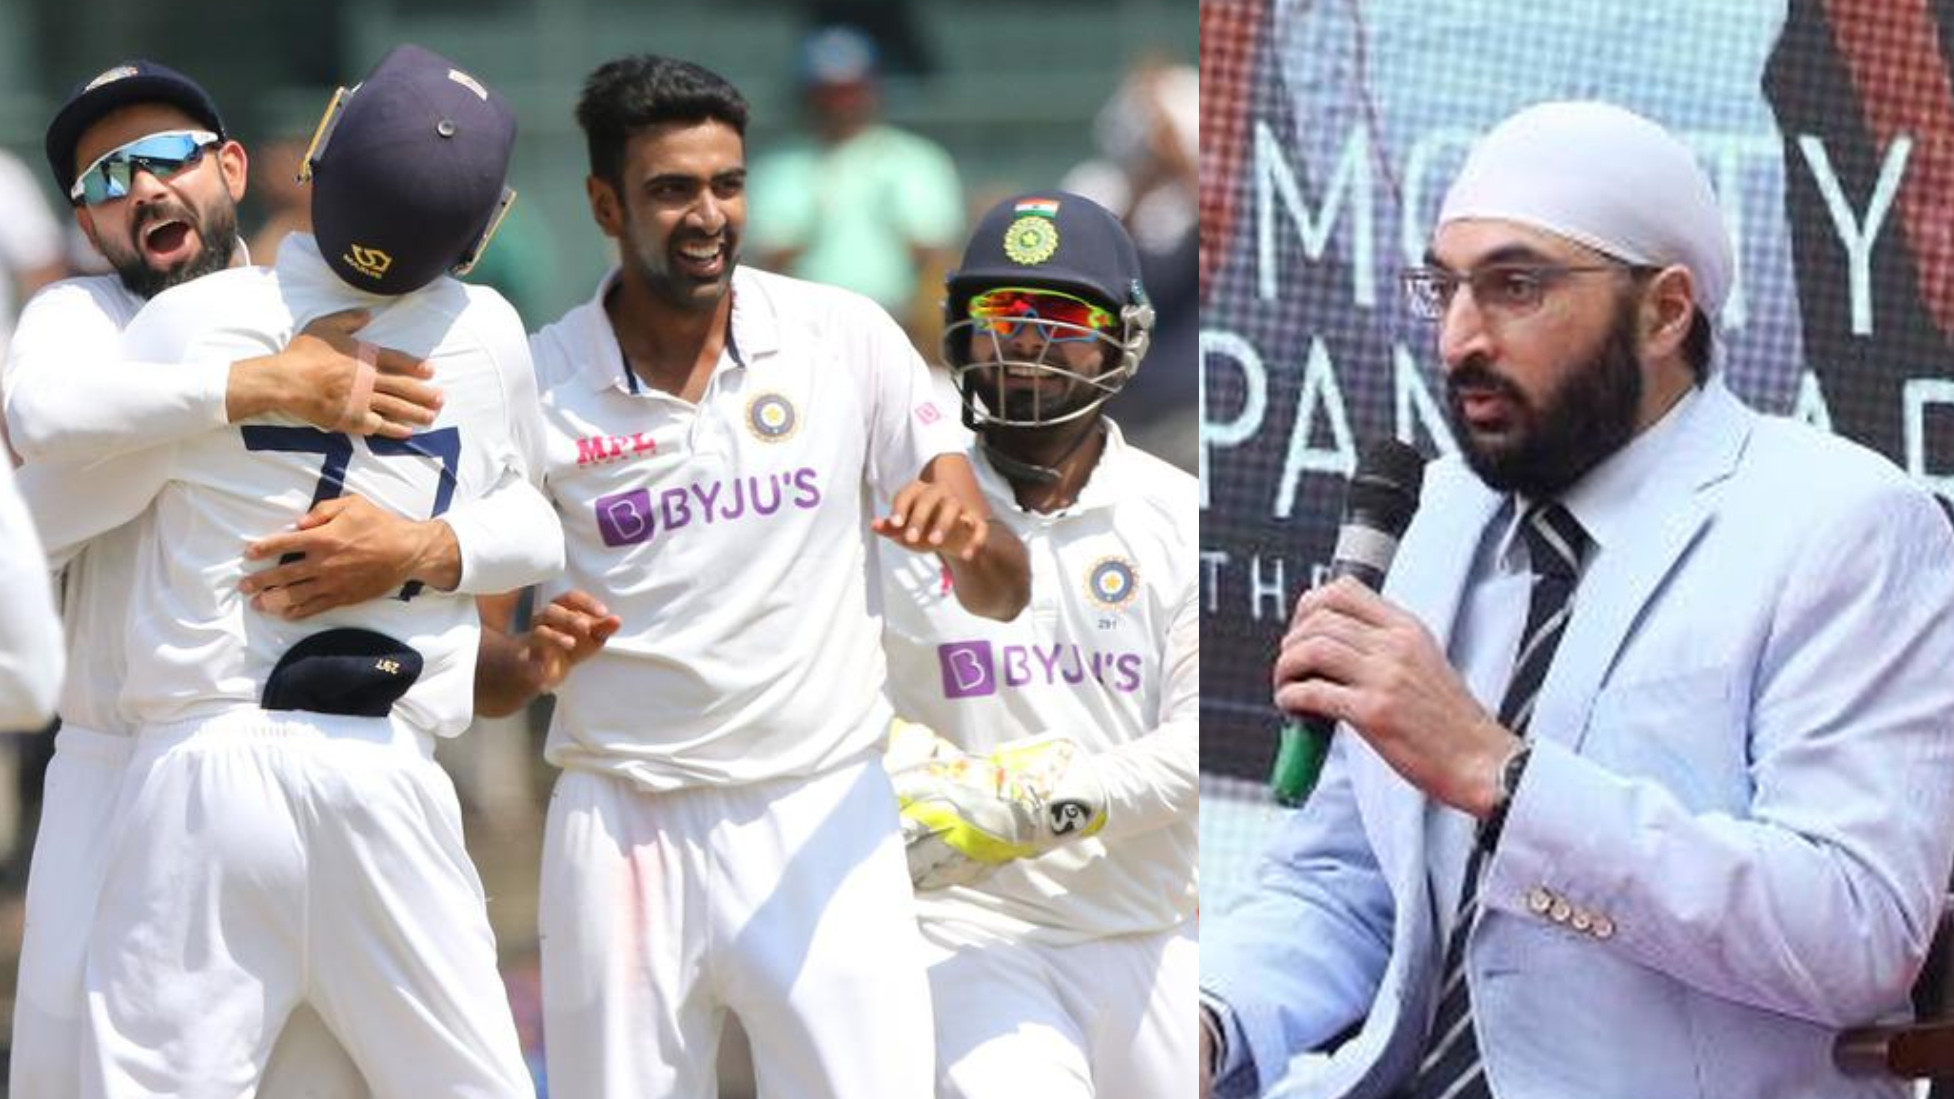 IND v ENG 2021: Panesar says ICC should dock India points if Ahmedabad pitch for 4th Test similar to 3rd